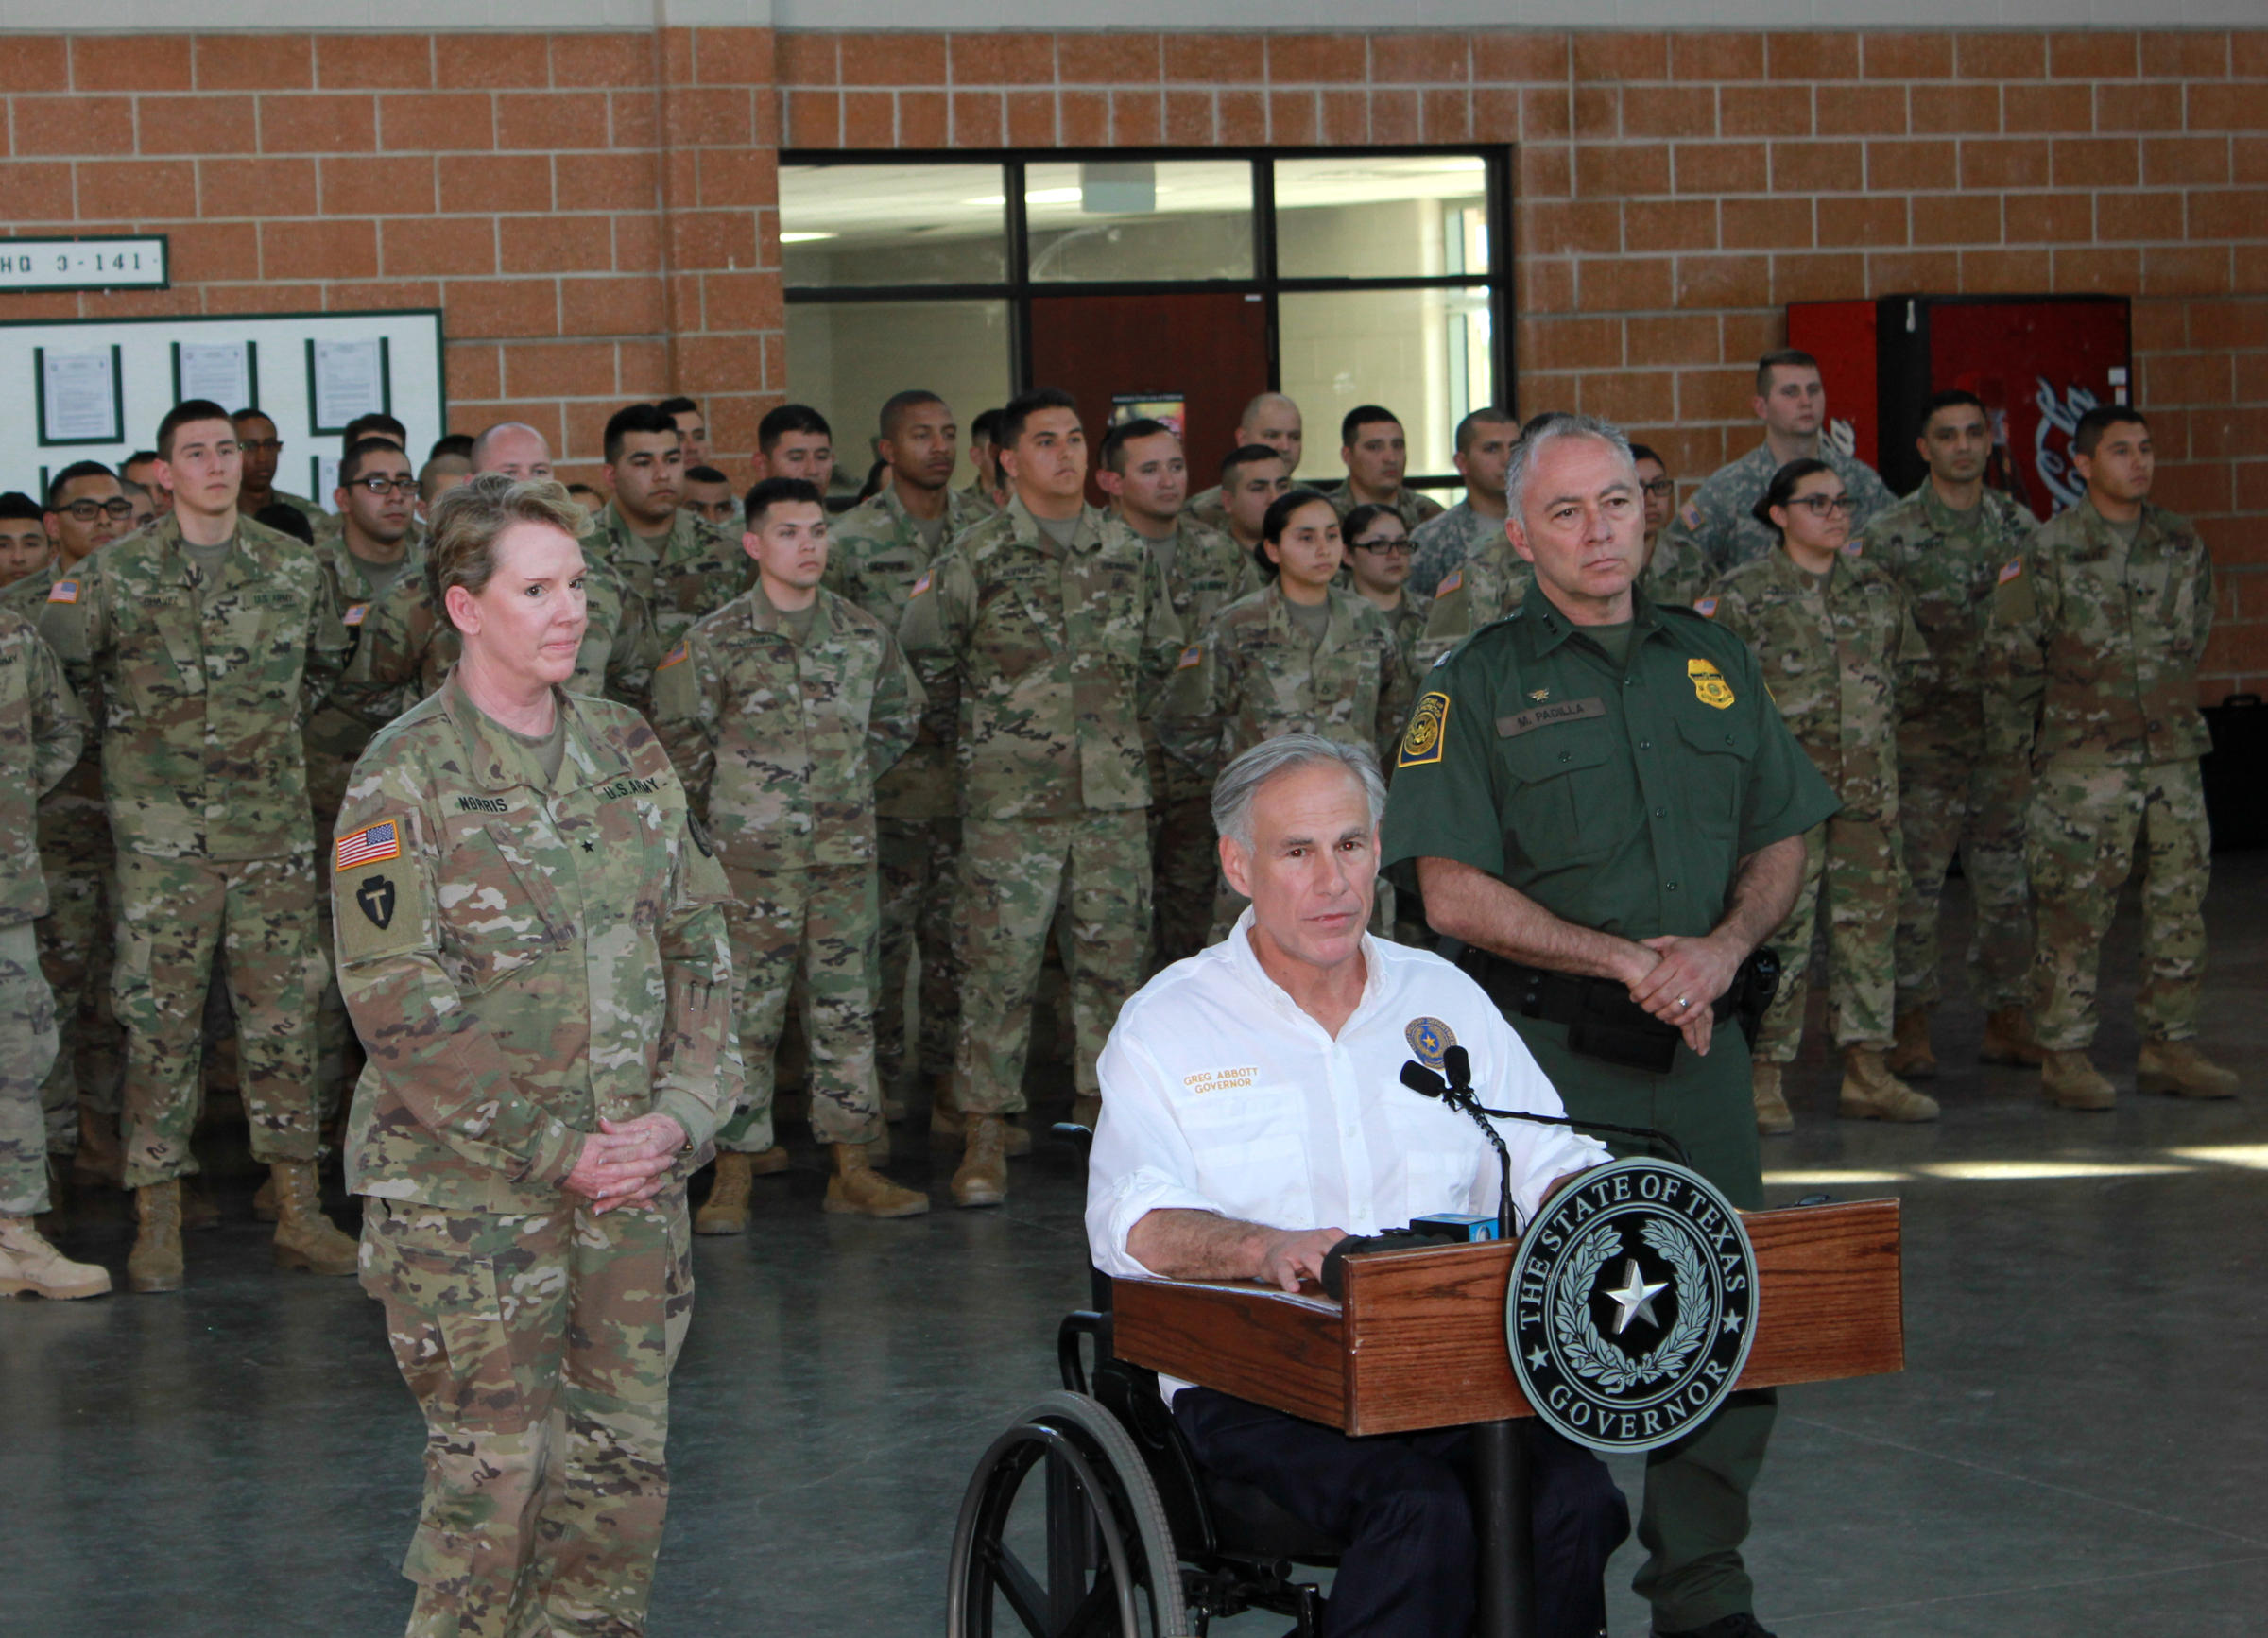 Gov. Greg Abbott deployed the Texas National Guard to the U.S.-Mexico border. Abbott made the announcement alongside Brig. Gen Tracy Norris of the Texas National Guard, left, and Rio Grande Valley Sector Border Patrol Chief Manuel Padilla.